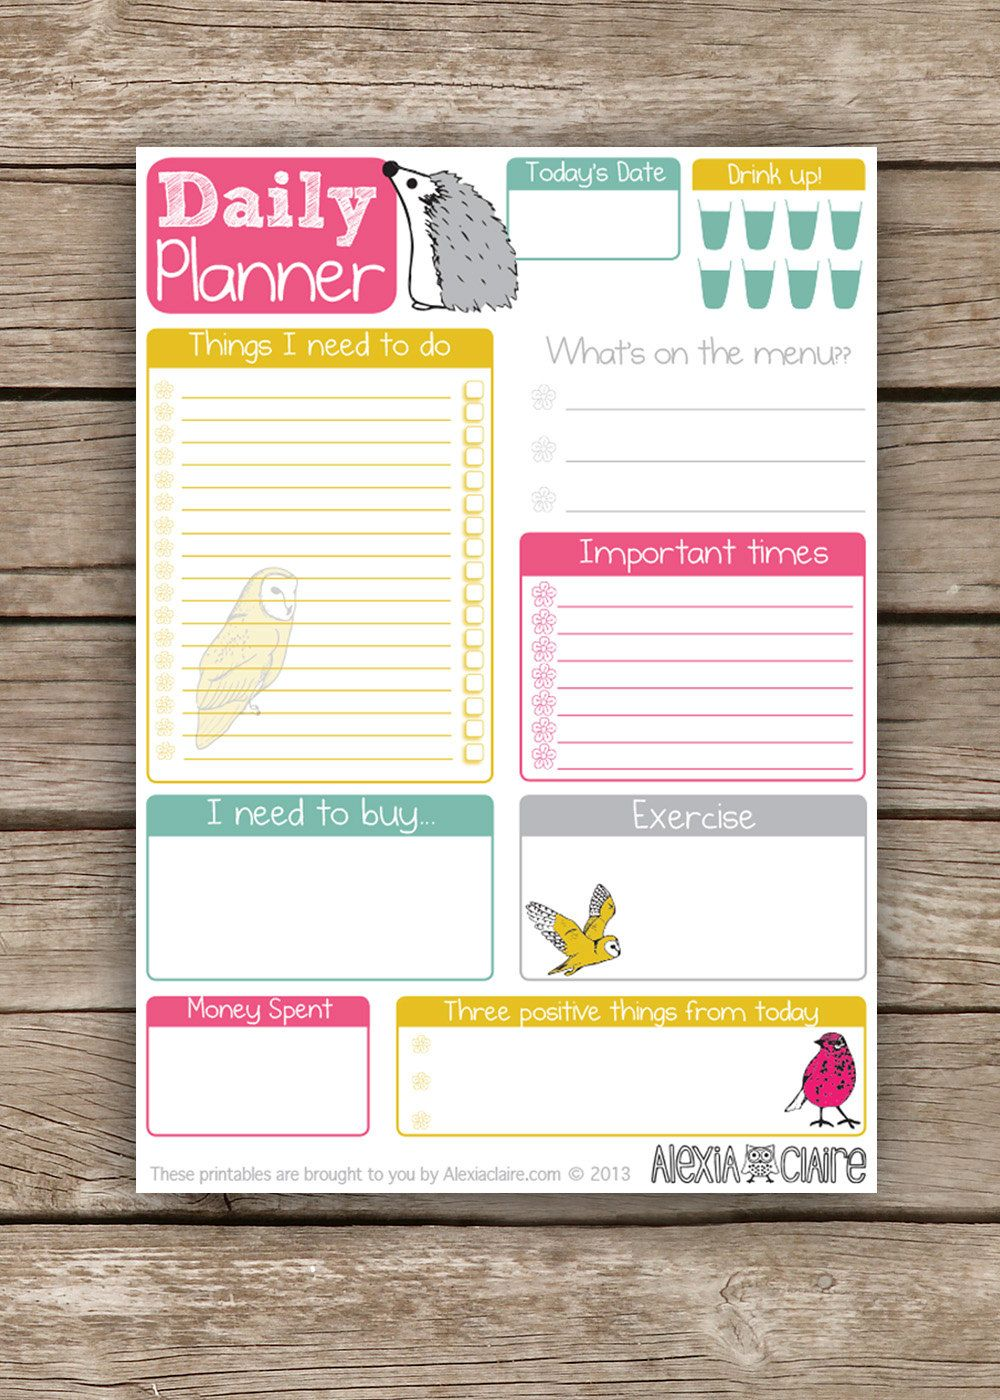 Daily Planner Printable   To Do List   Cute animal illustrated ...